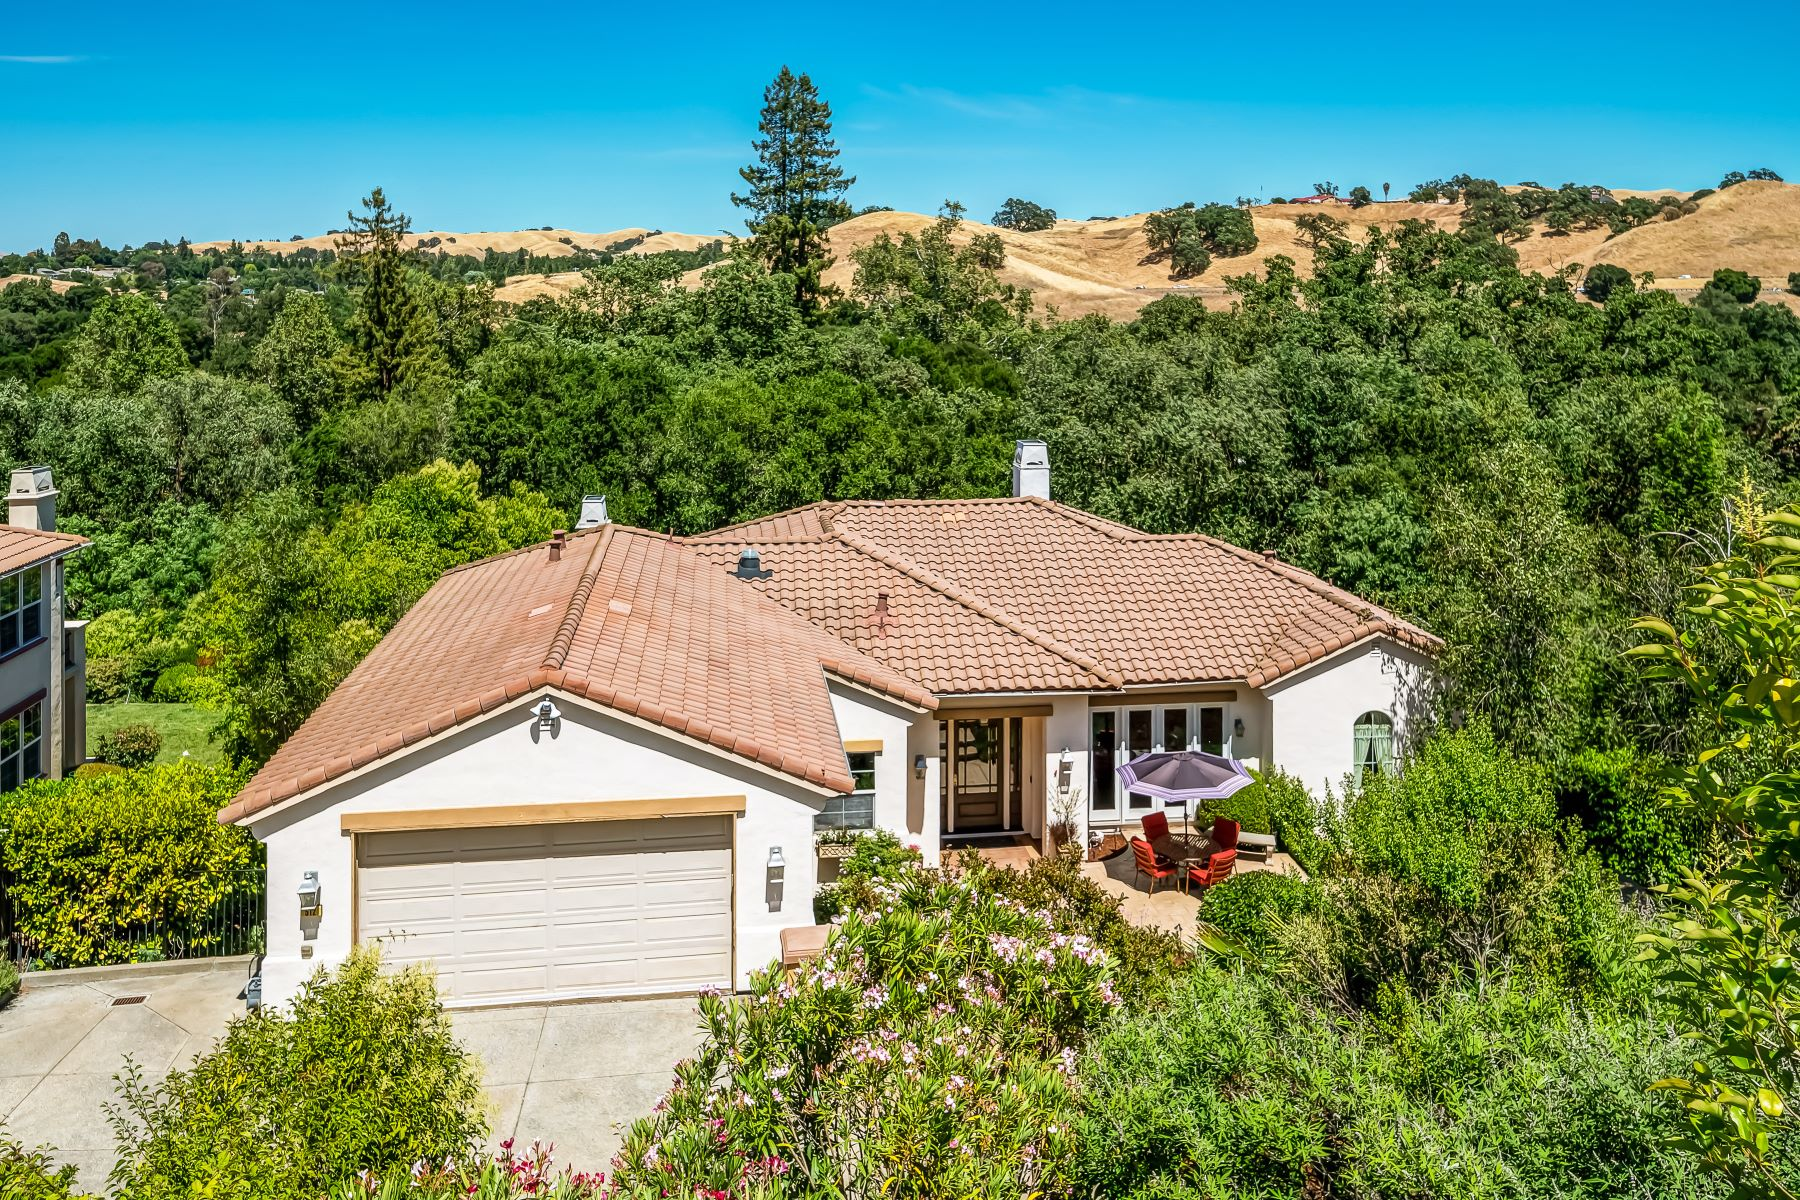 Single Family Homes for Active at 512 Bunker Lane, Pleasanton, CA 94566 512 Bunker Lane, Pleasanton Pleasanton, California 94566 United States